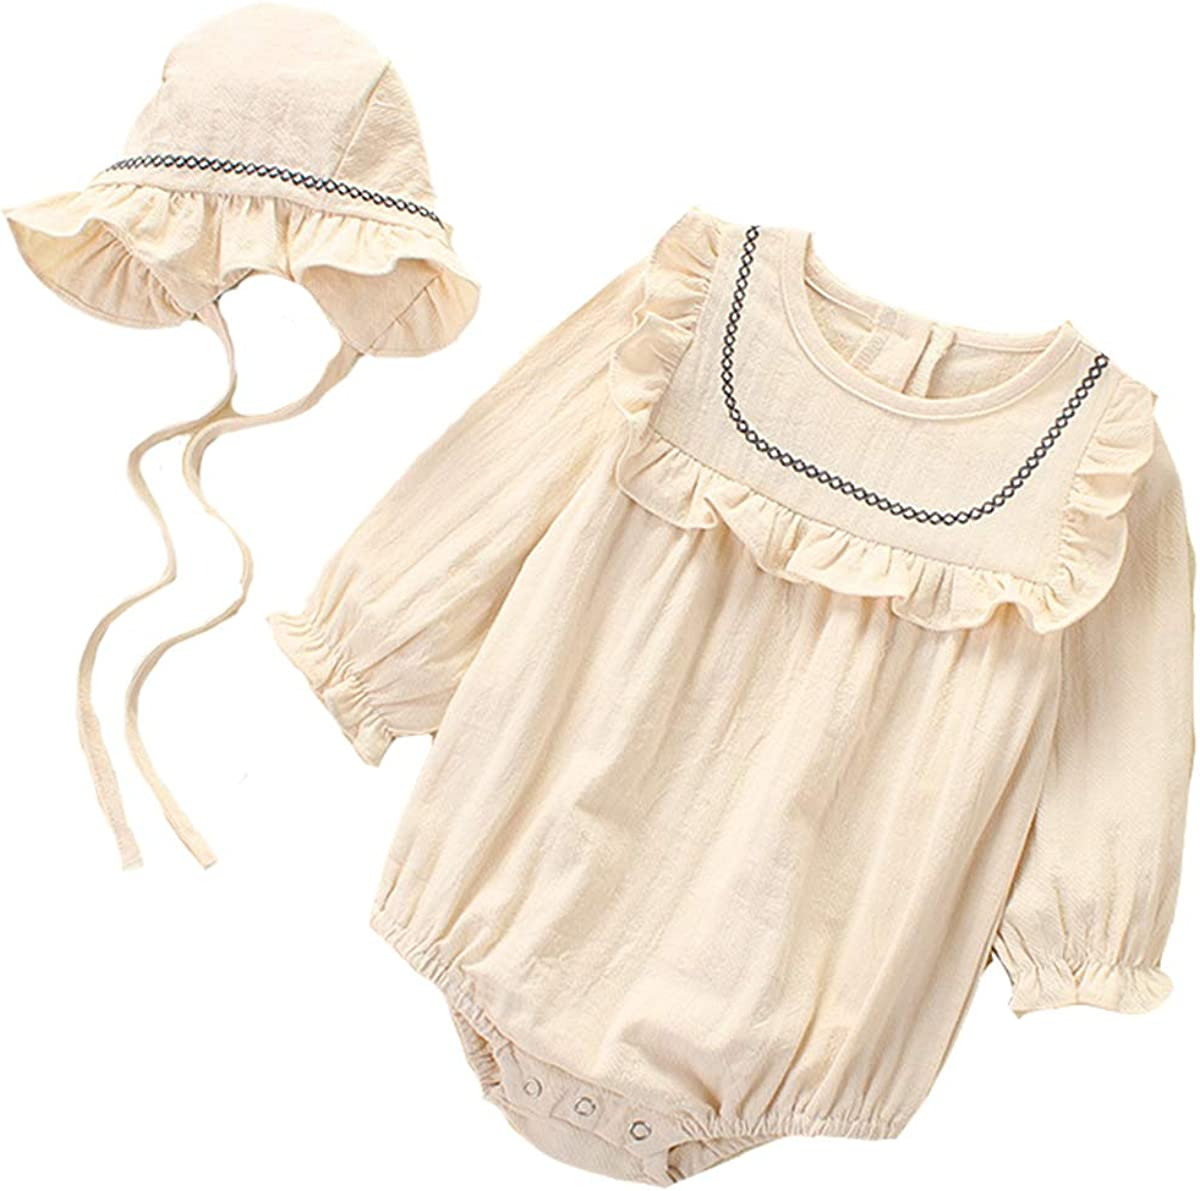 Infant Baby Girls Ruffle Long Sleeve Romper Tops Shirt Jumpsuit Cotton Clothes Hat